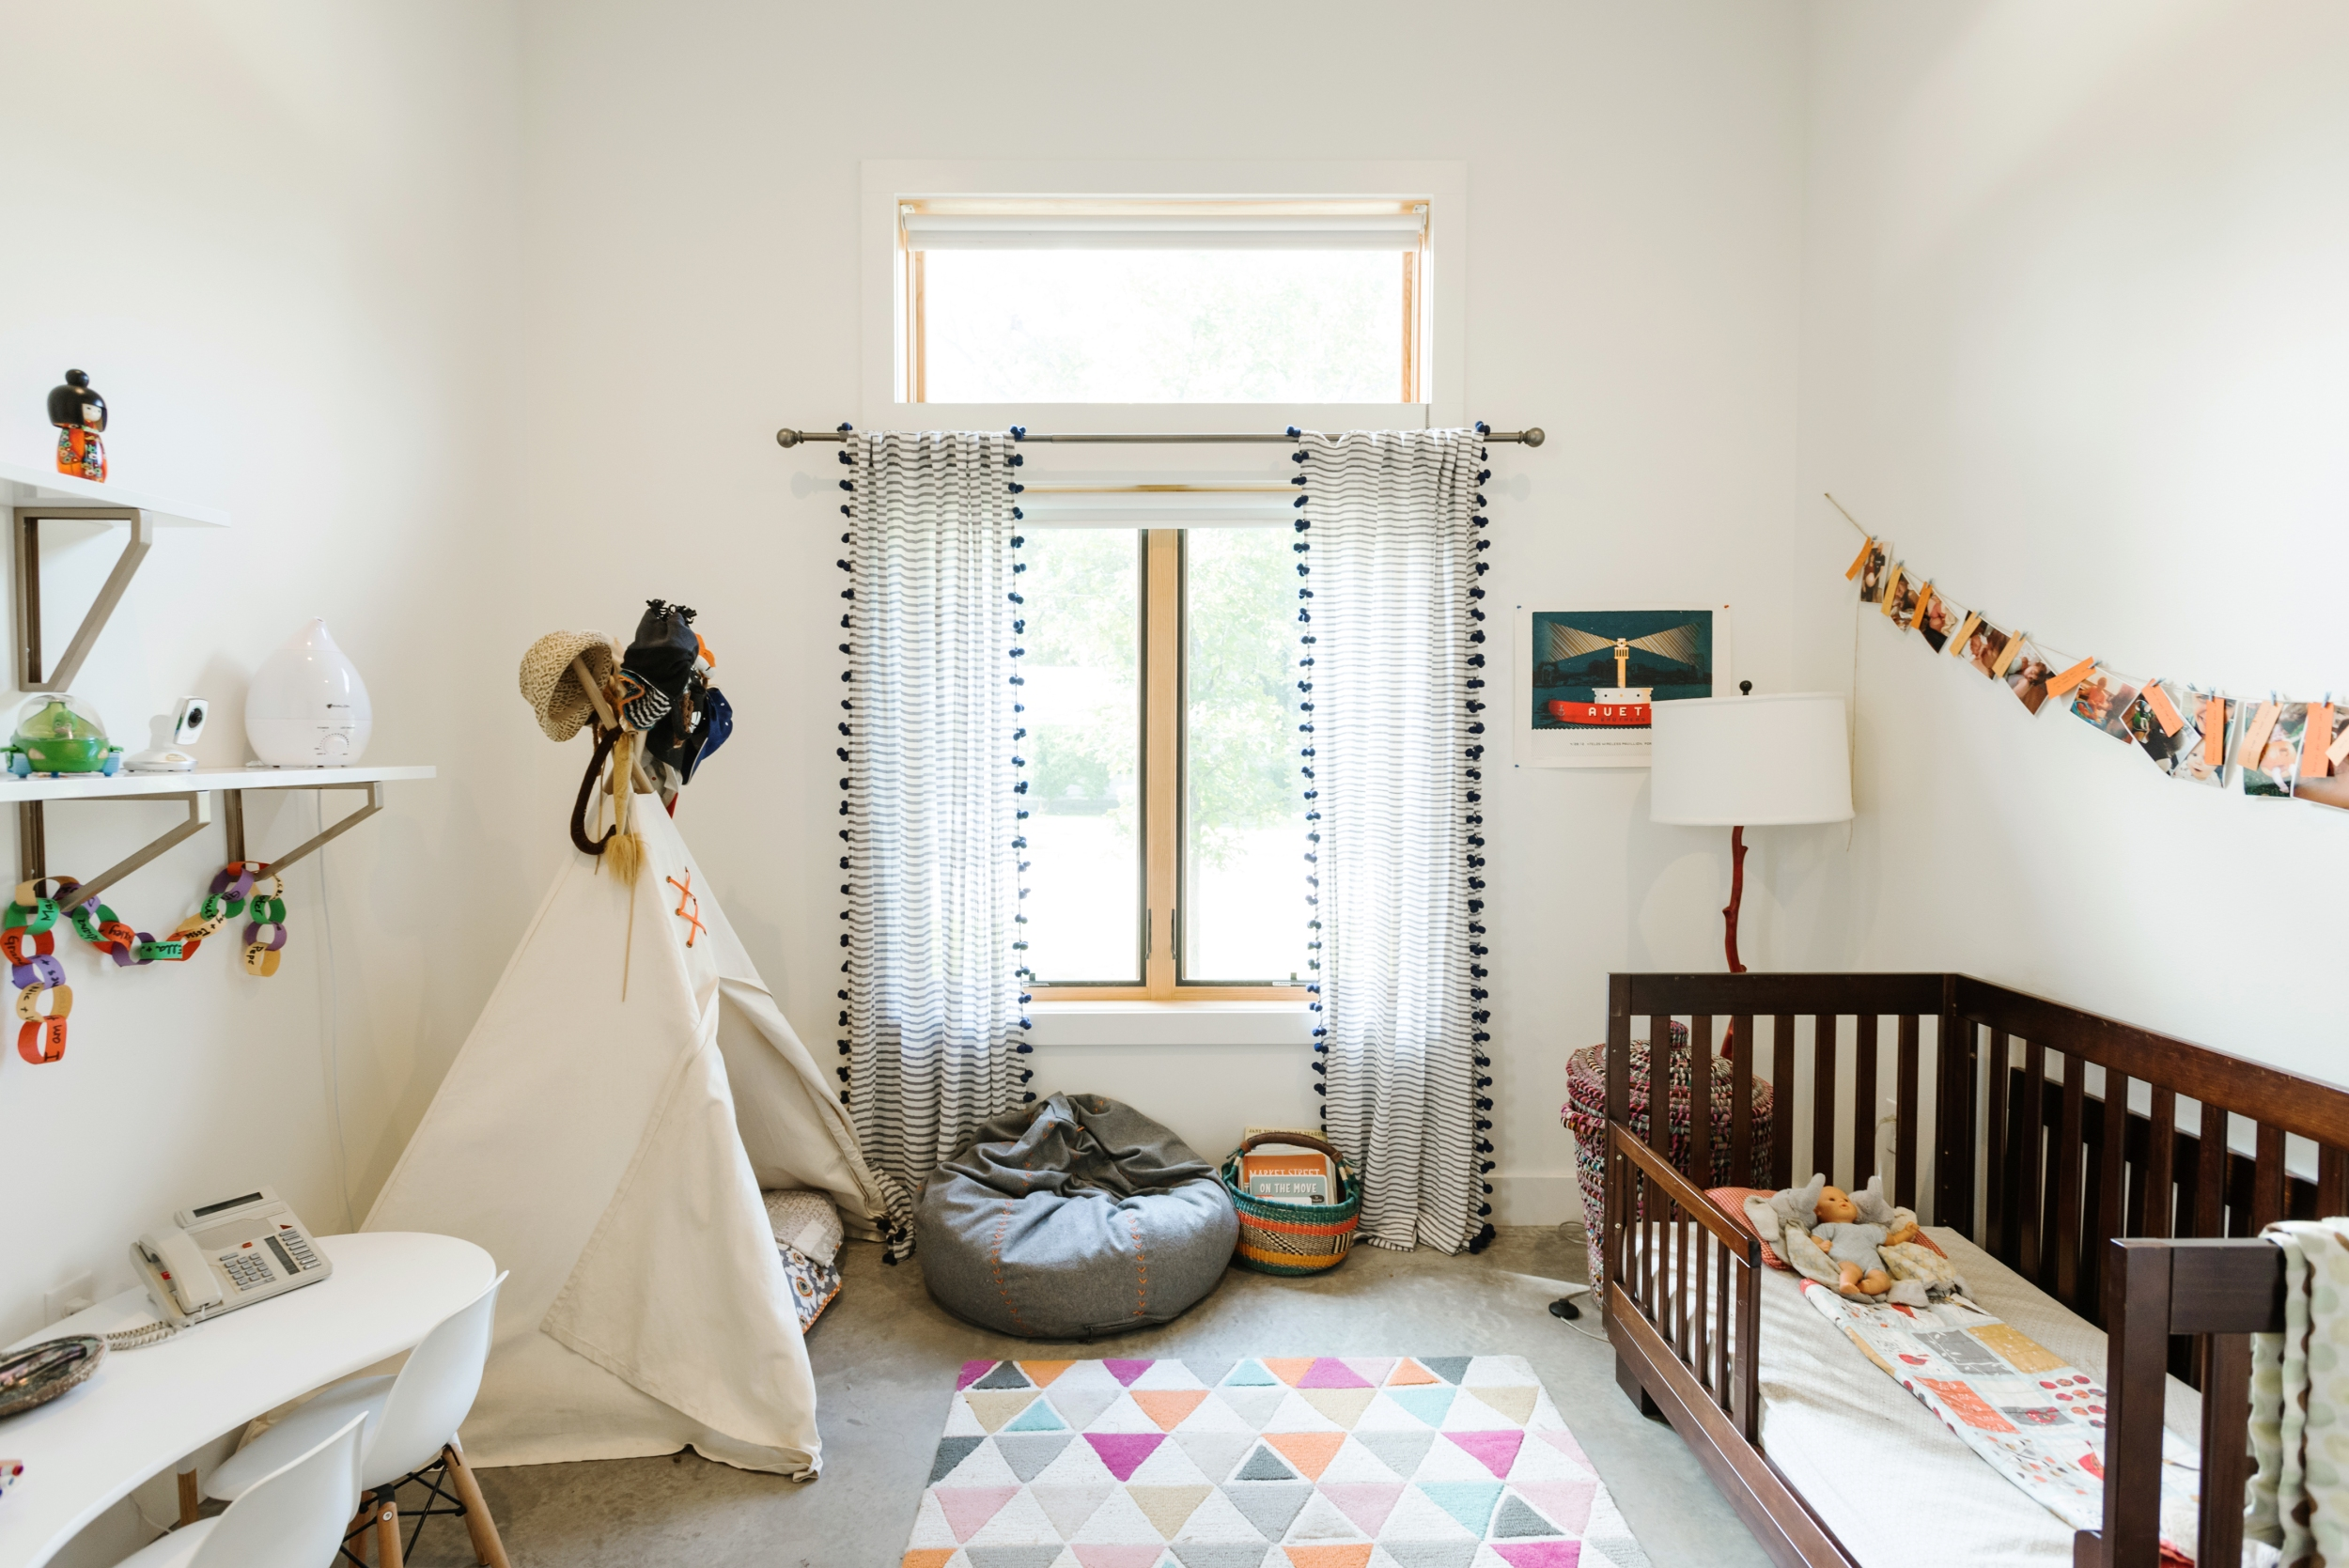 A family friendly home in Austin showing a room with a cot, toys and a teepee for young children